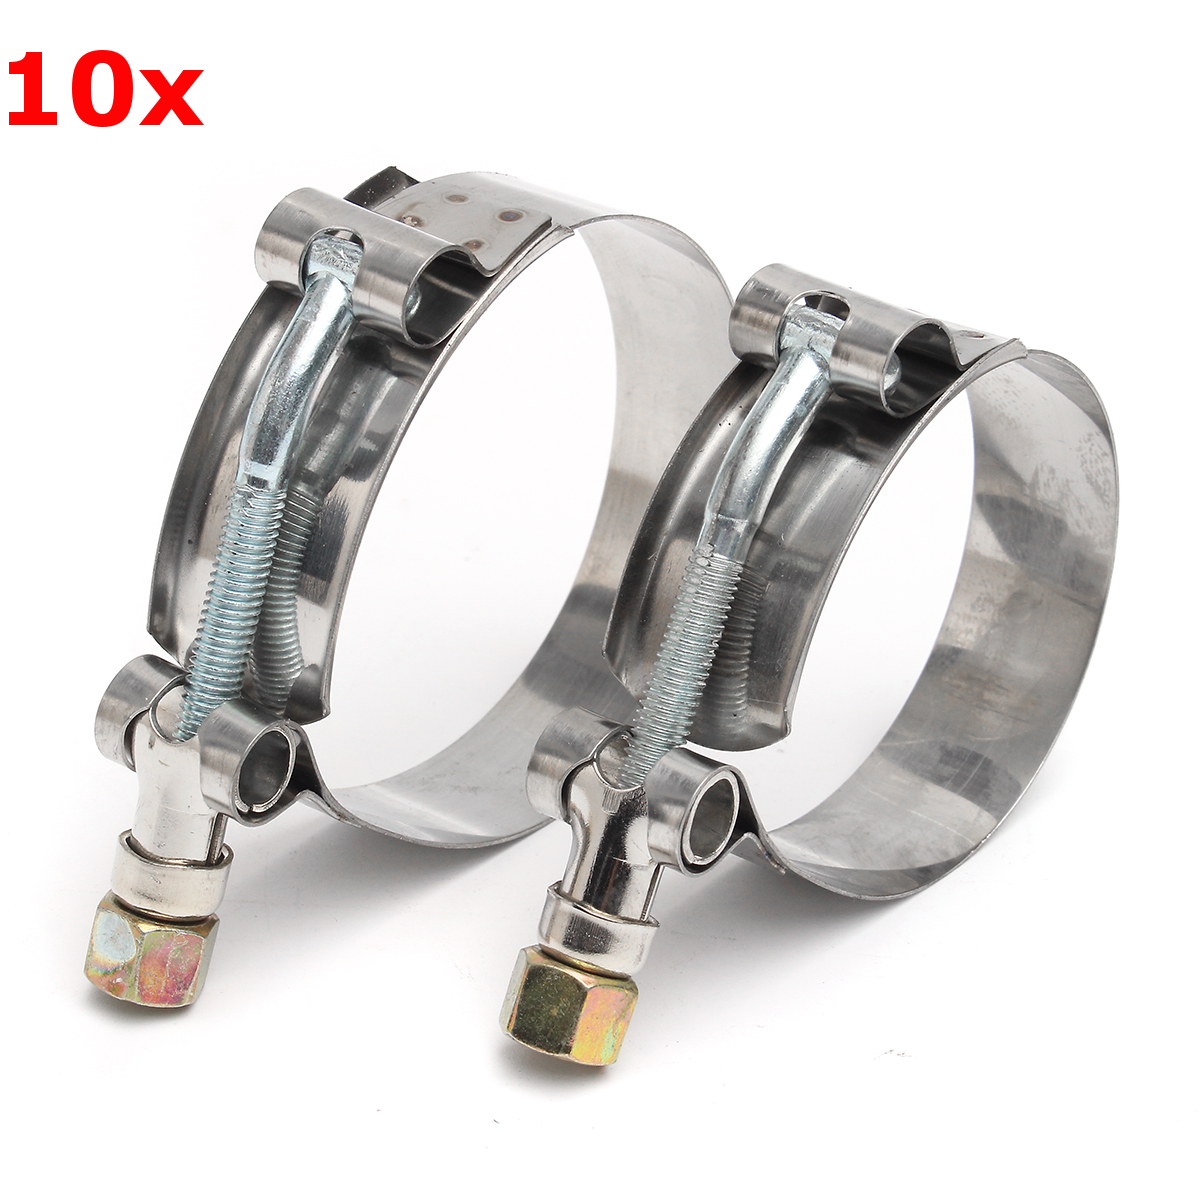 Pcs stainless steel t bolt clamps clips for silicone